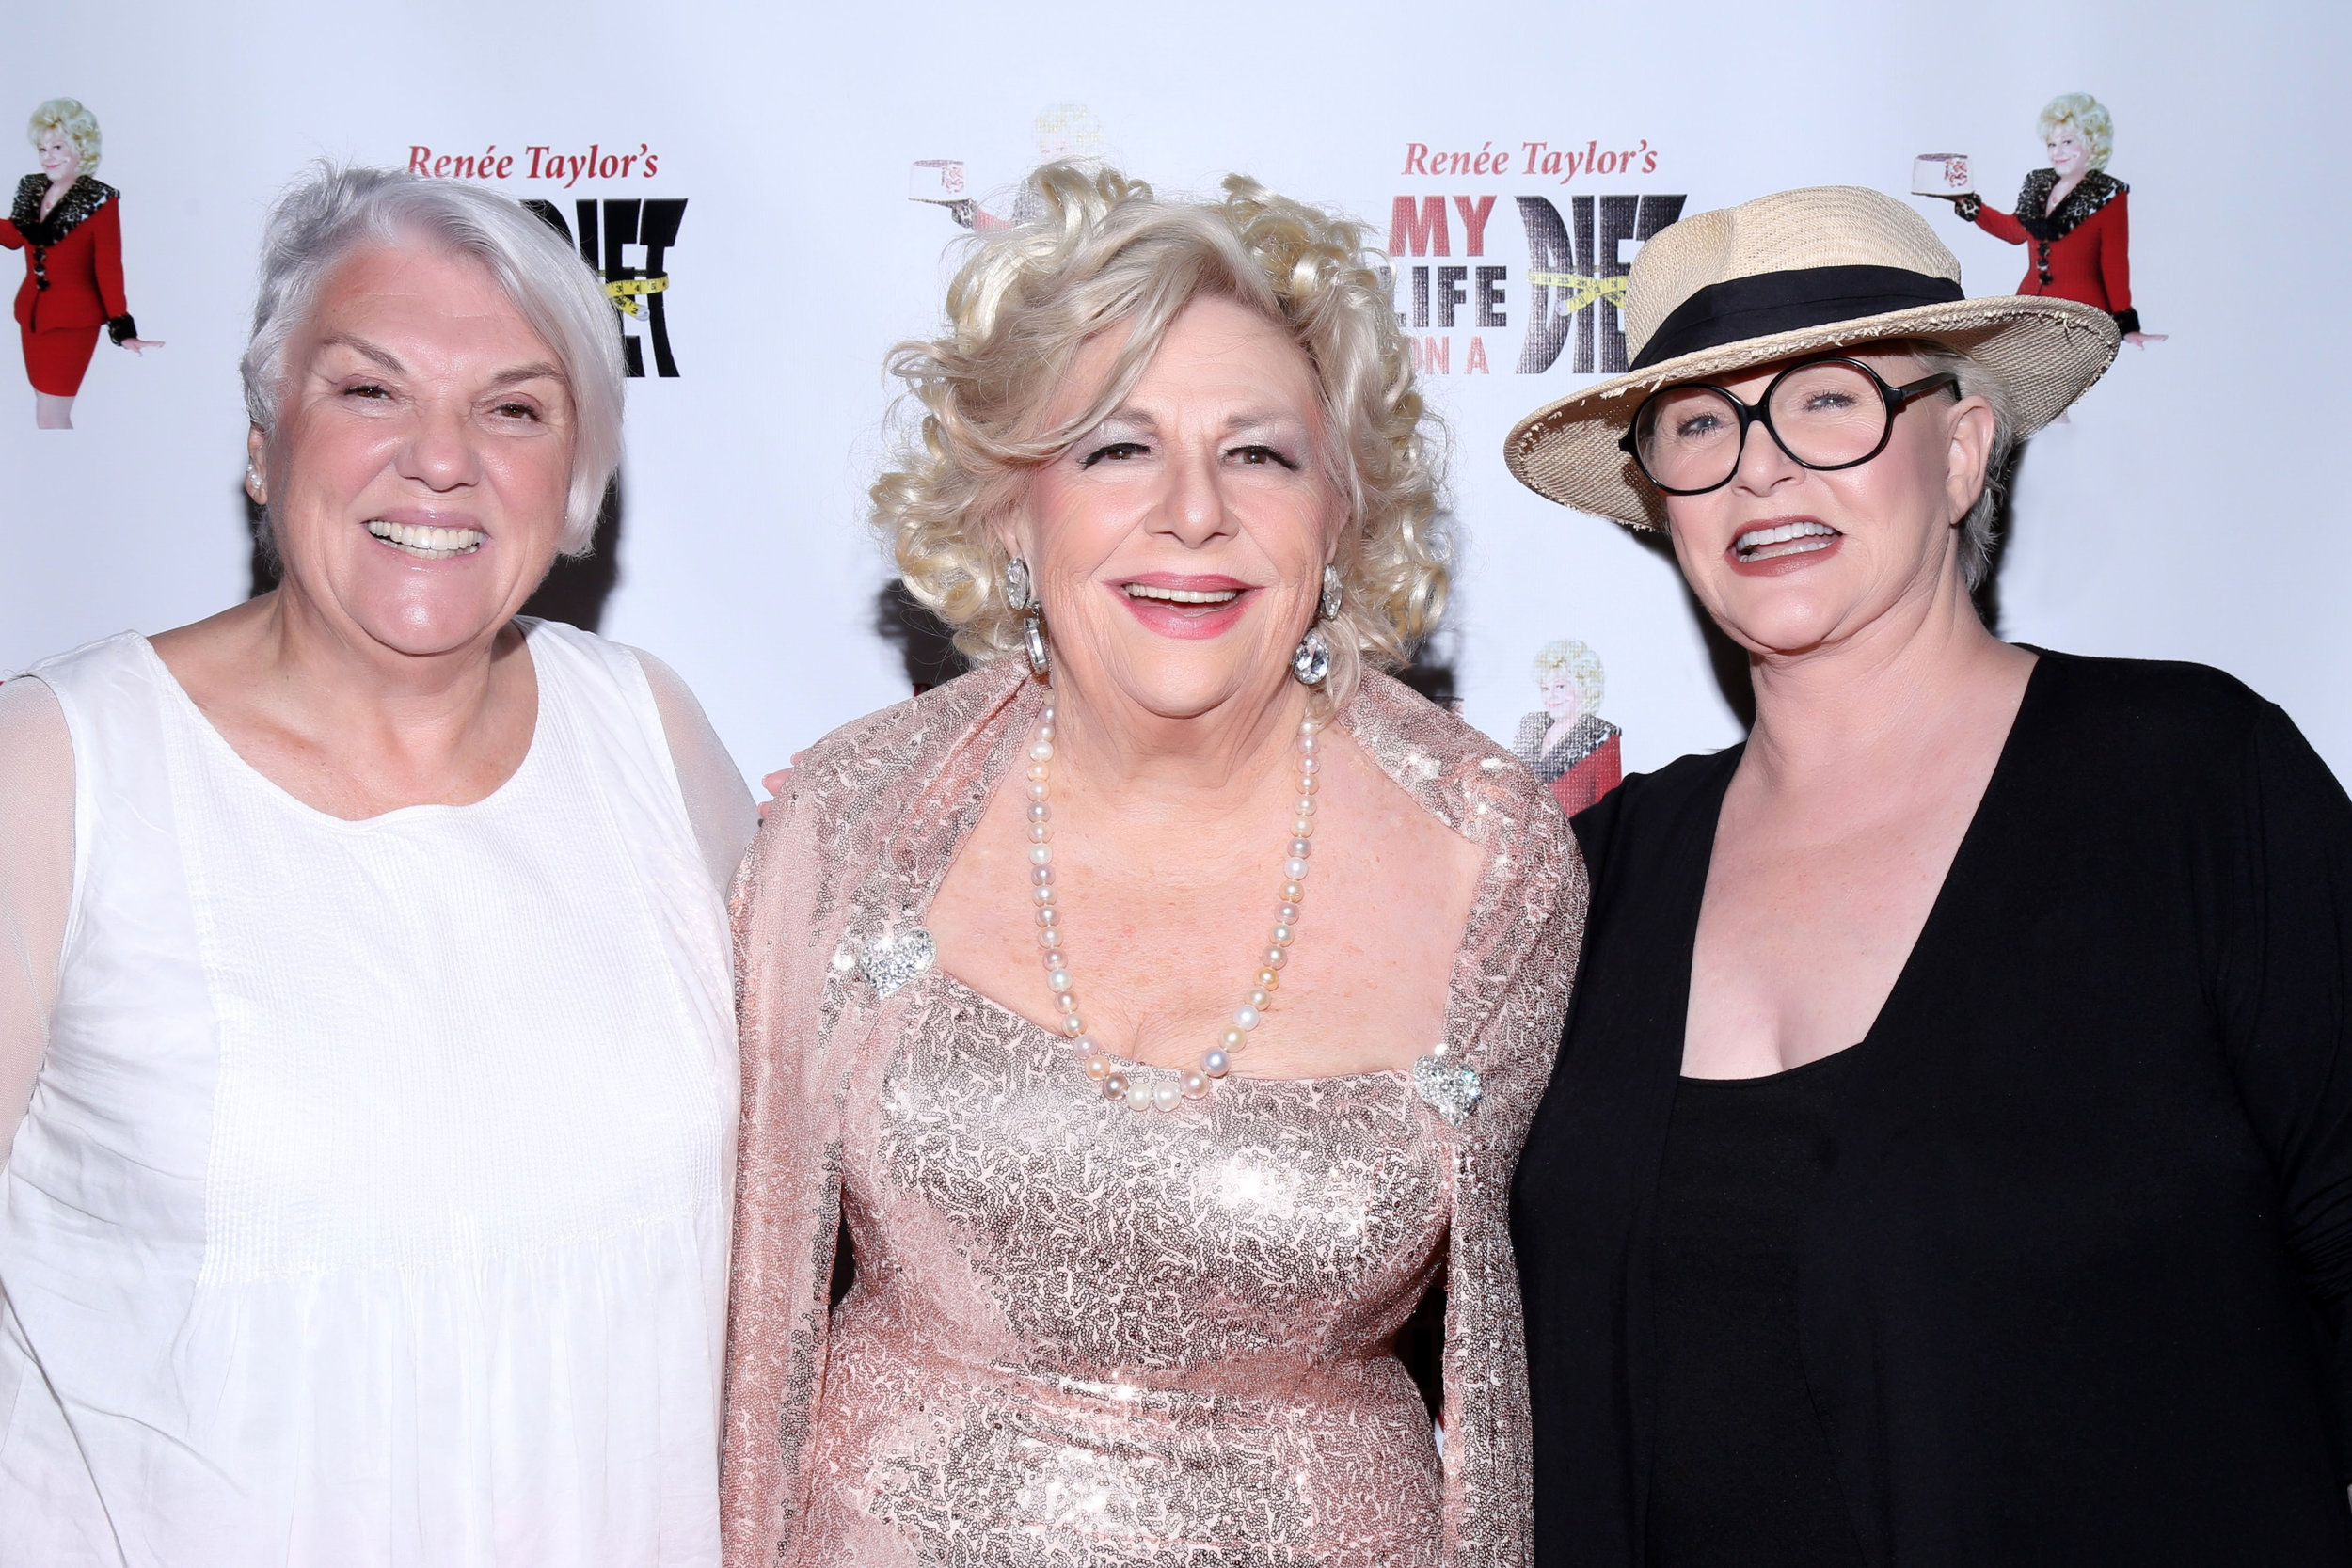 Tyne Daly, Renée Taylor, Sharon Gless